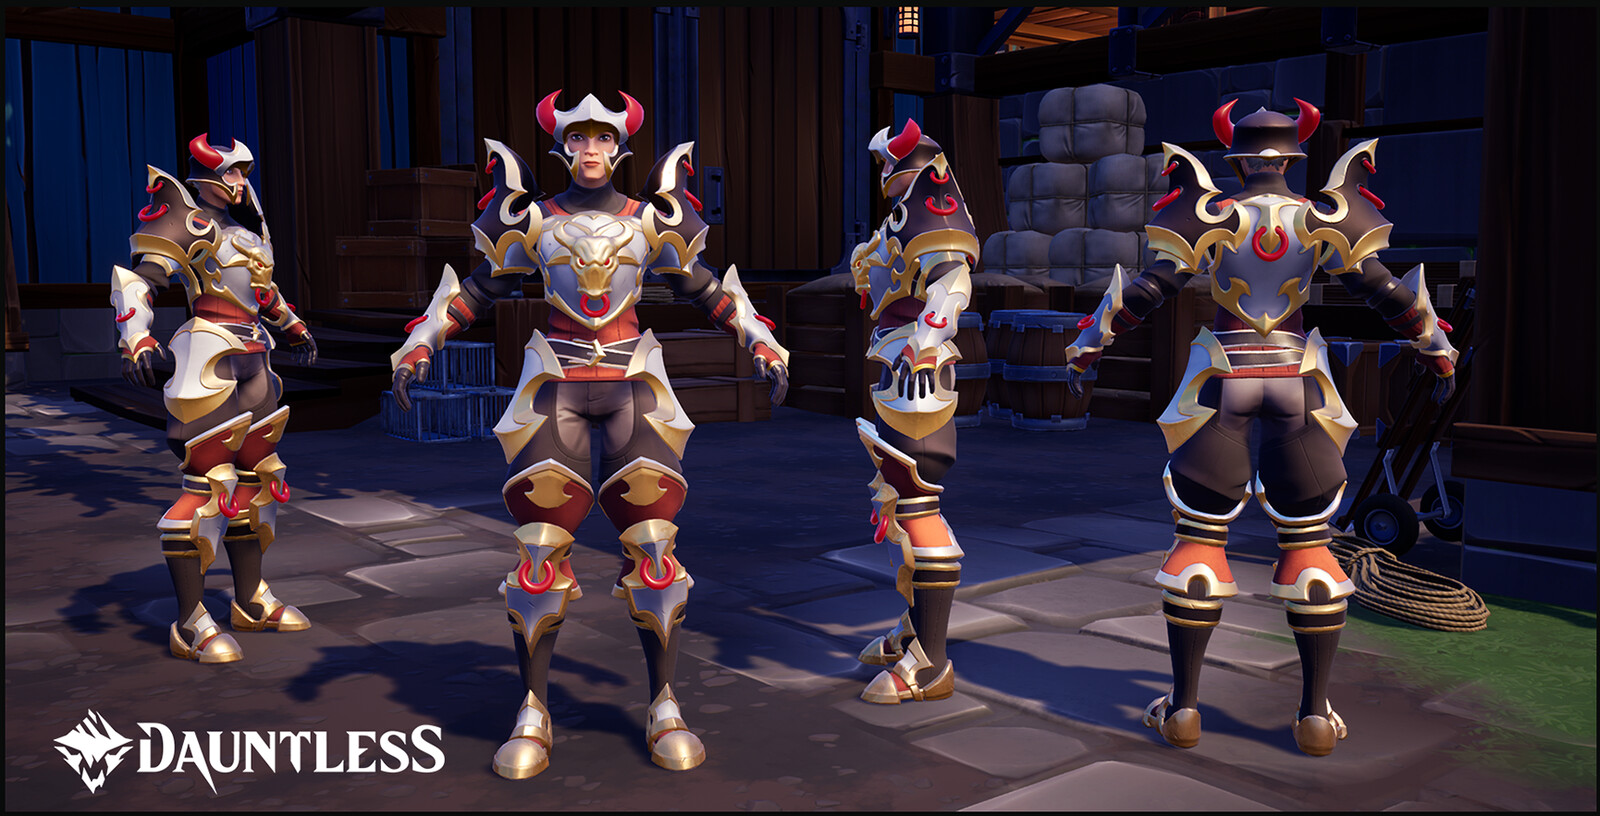 Armor of the First Slayer. LVL 50 Hunt Pass reward for the season of Myth and Legend (Female version shown).